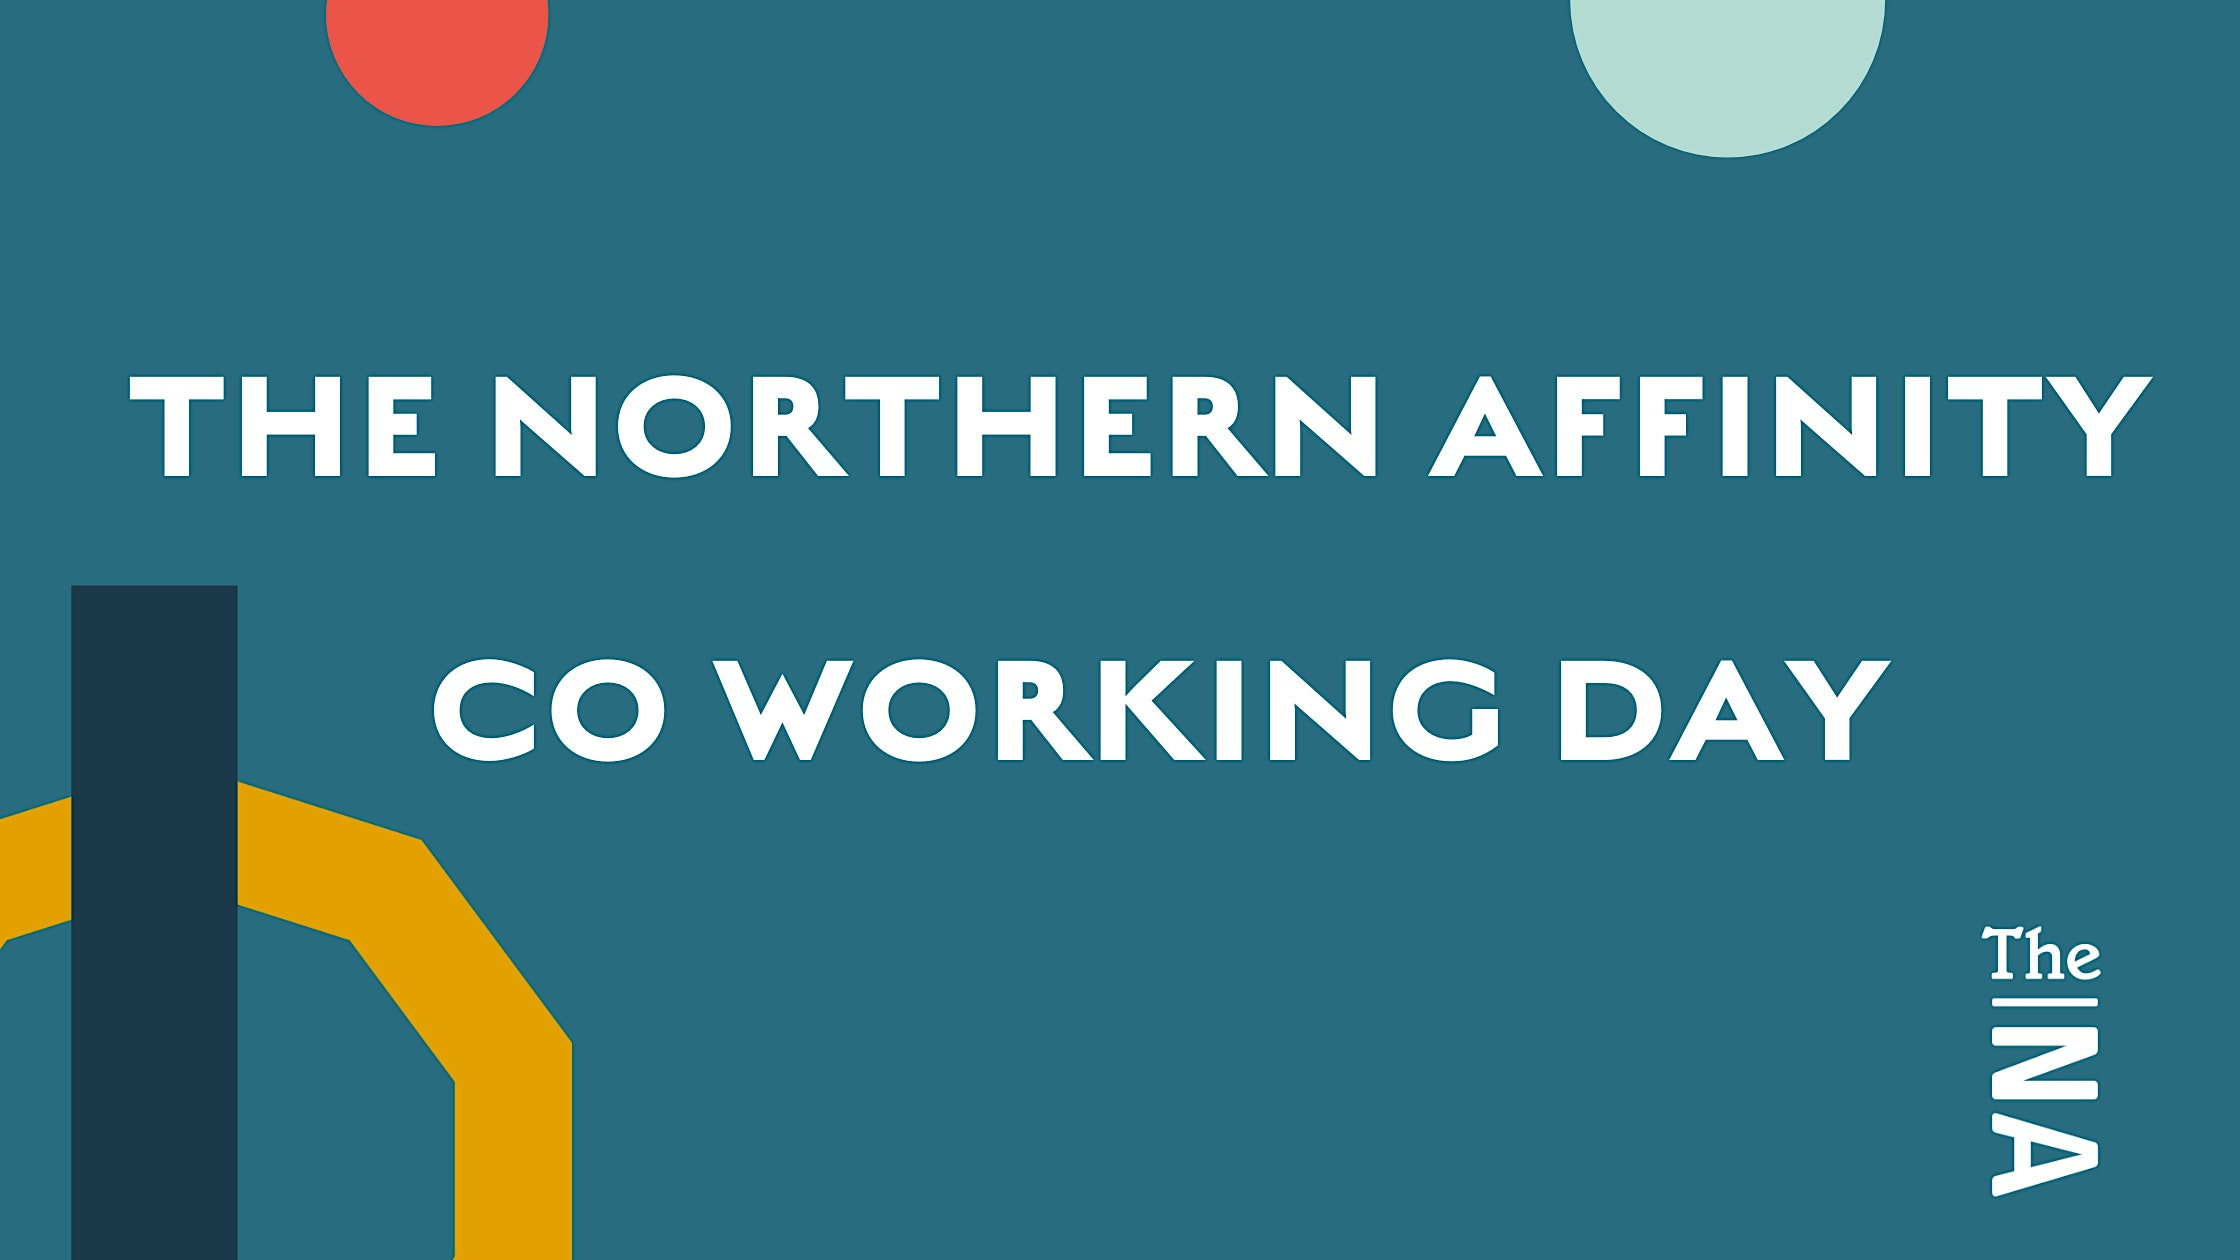 The Northern Affinity Co Working Day @ Blackfriars House  Manchester